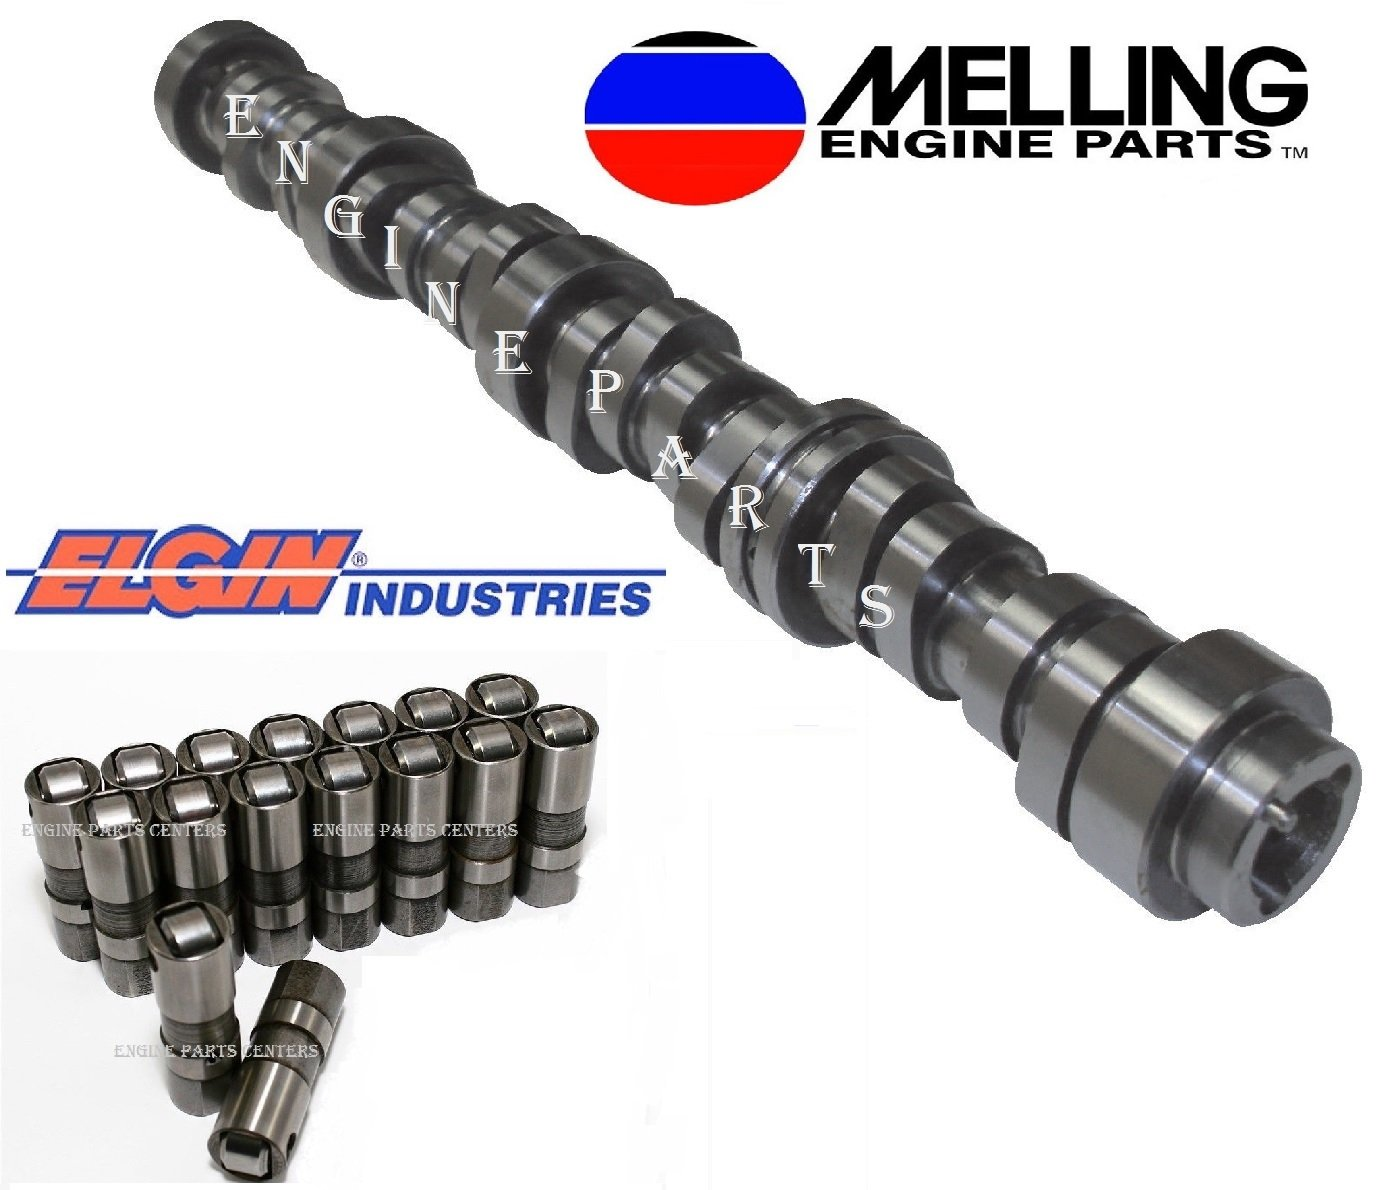 1. Melling Engine Kits 2007-2013 Chevrolet GM Silverado Sierra Truck 4.8 4.8L OHV NON-AFM Camshaft & Lifters Kit